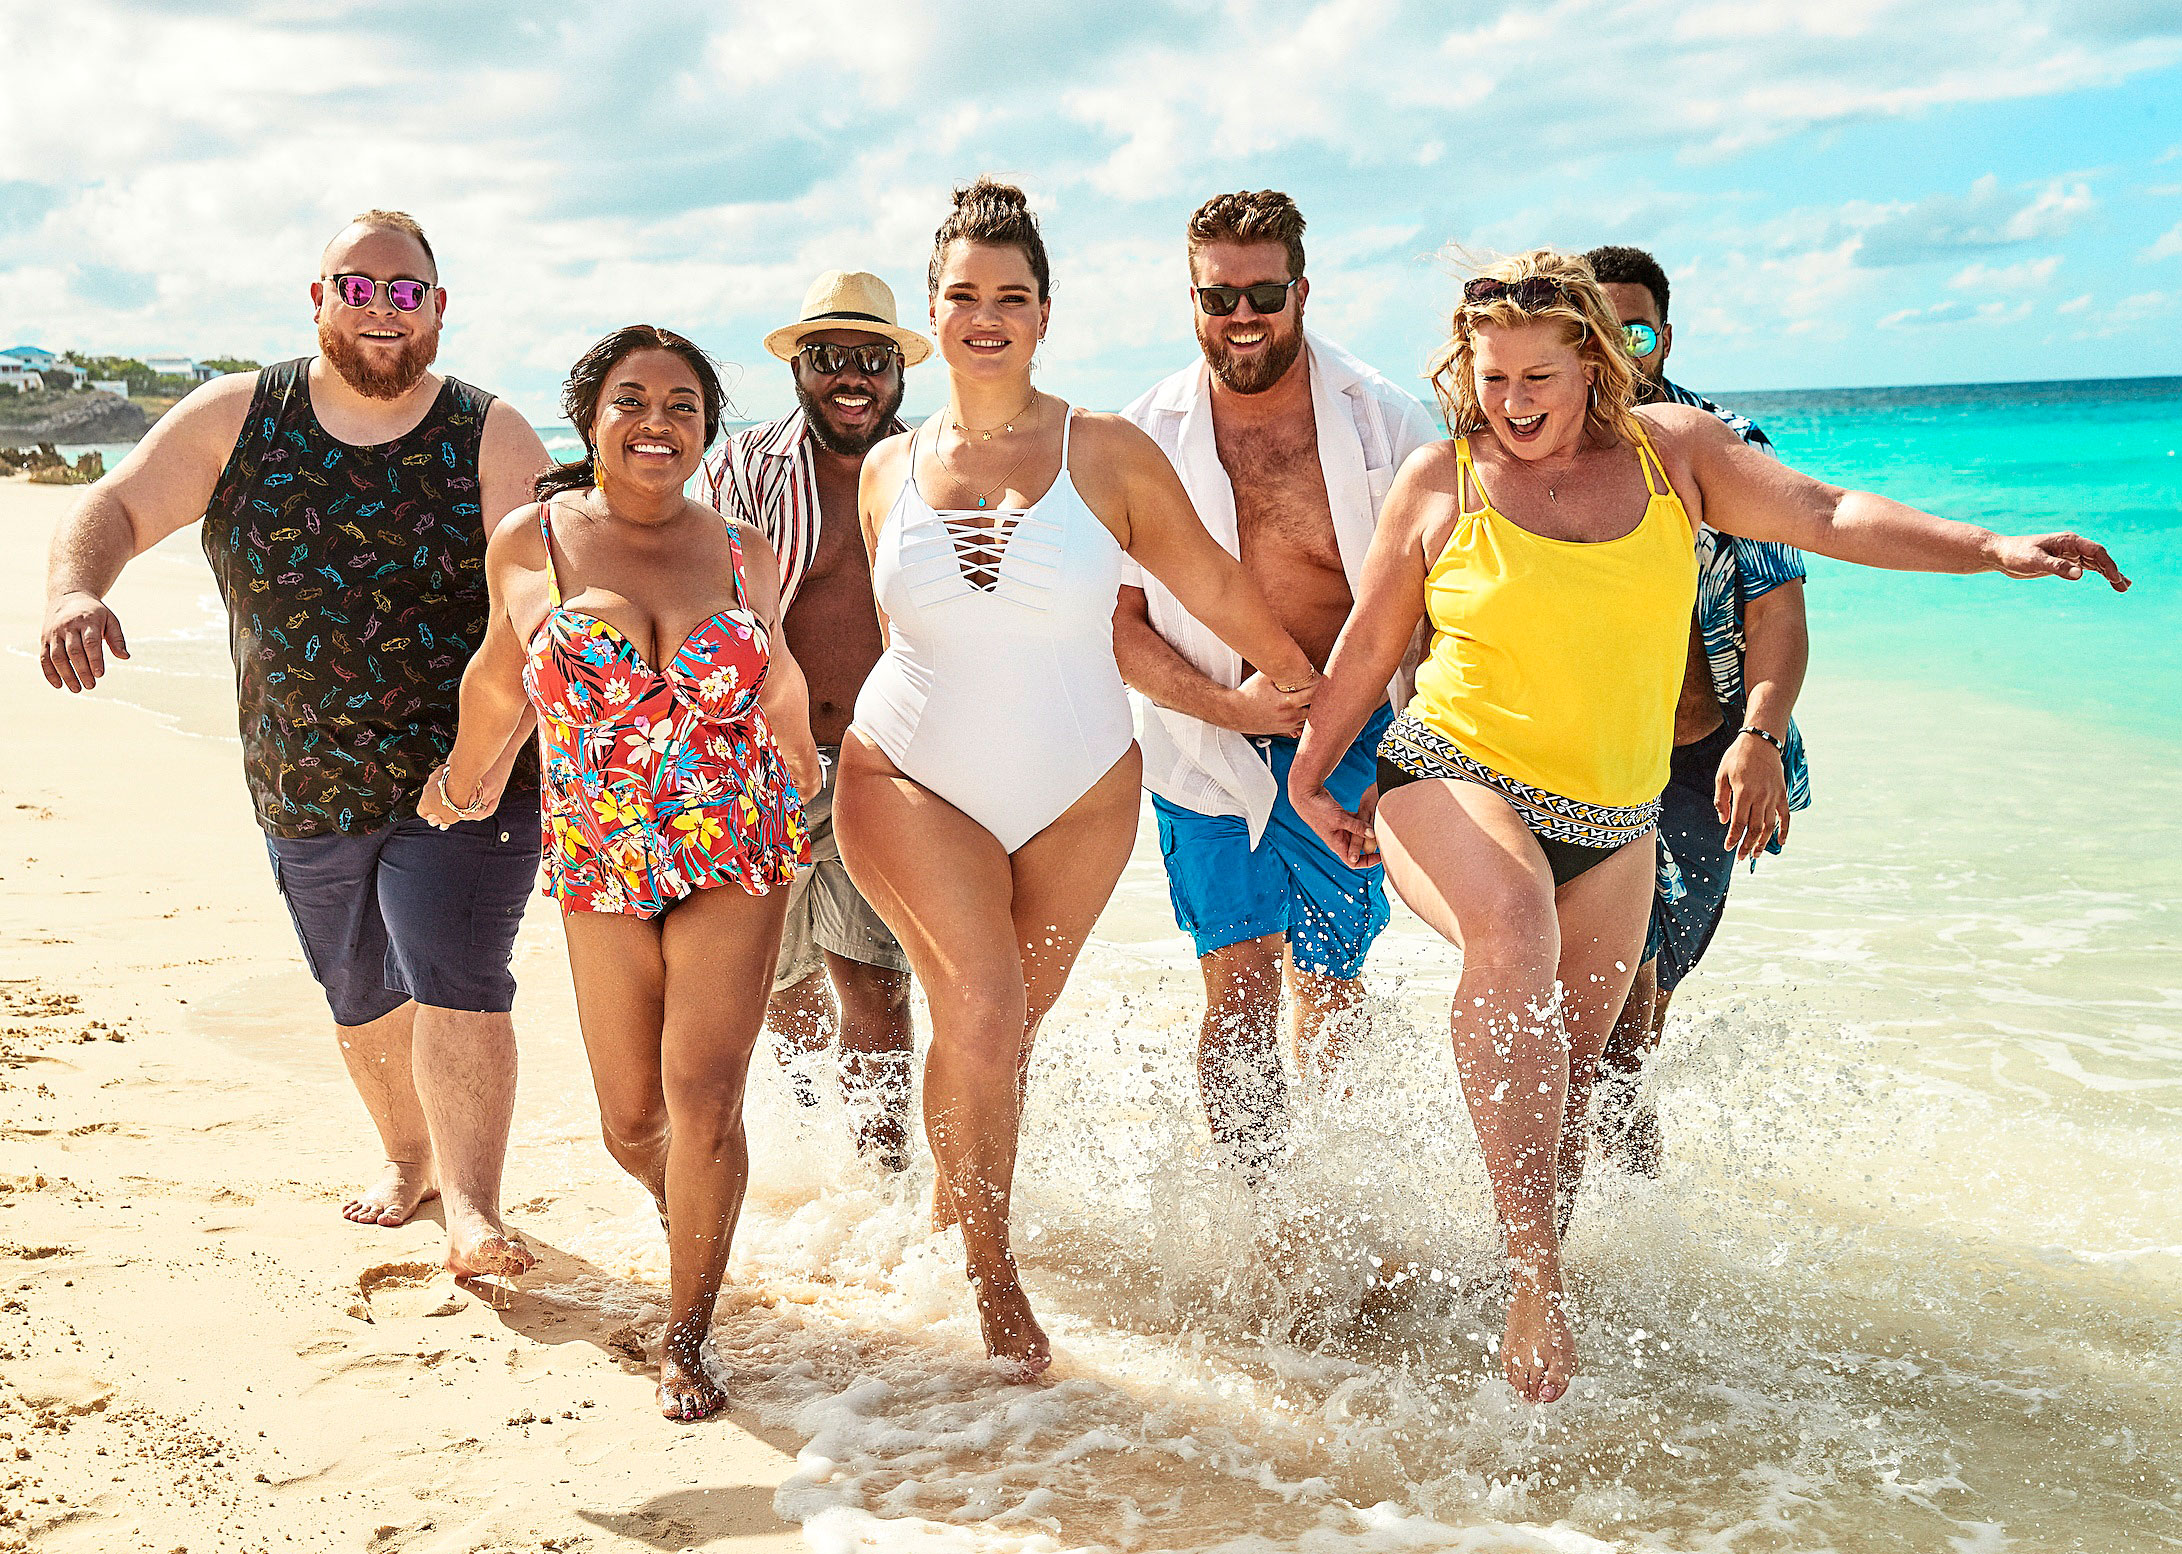 Ashley Graham Sherri Shepherd Lead Body-Positive Swim Campaign - The Every.